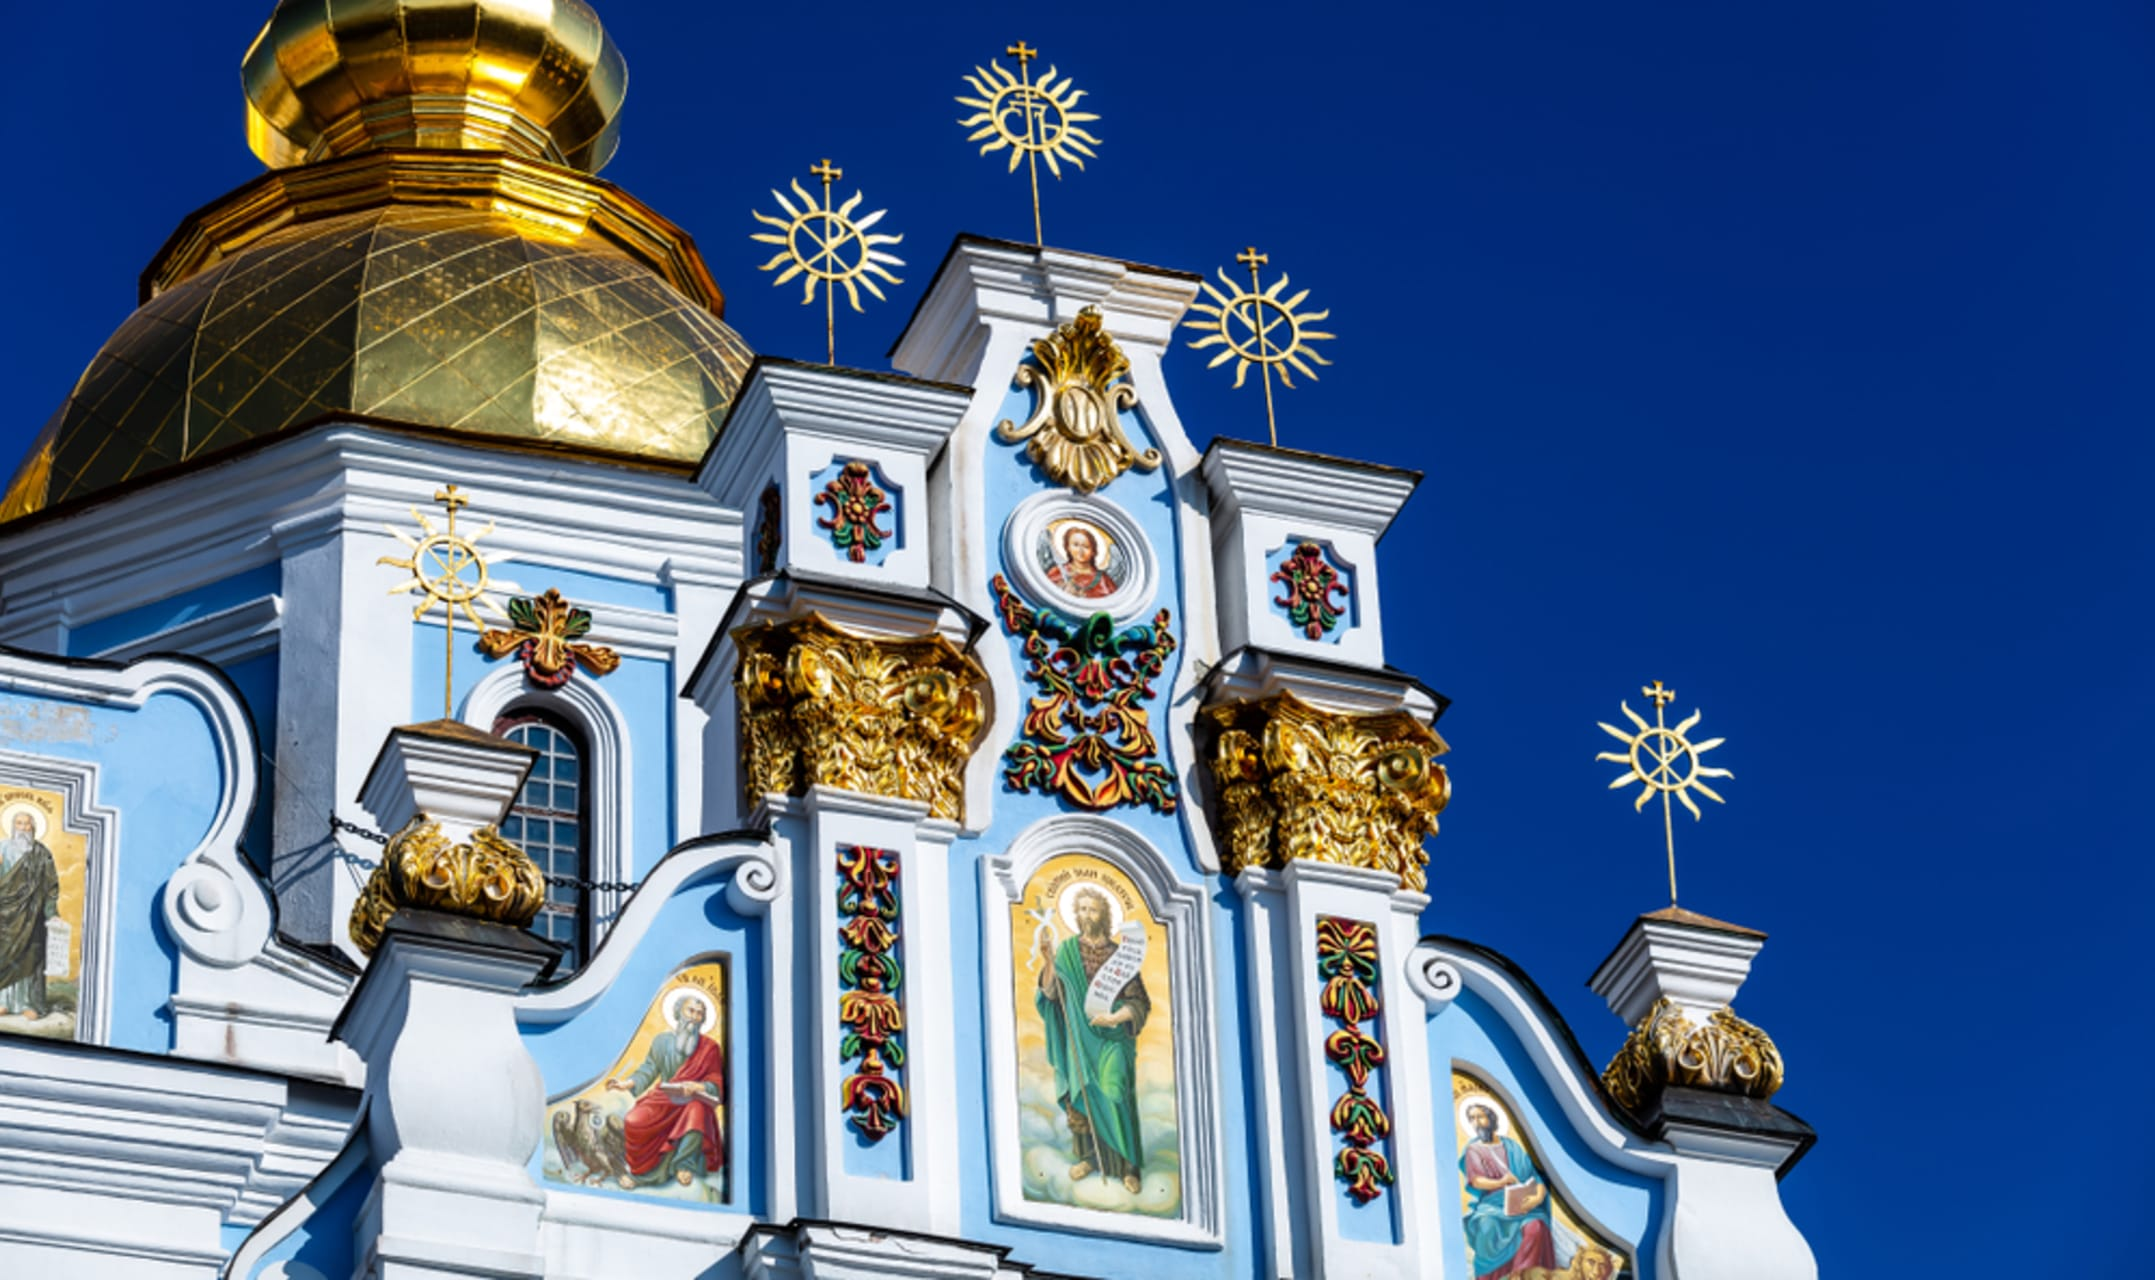 Kyiv - St Michael's Golden Domed Monastery and Funicular Ride